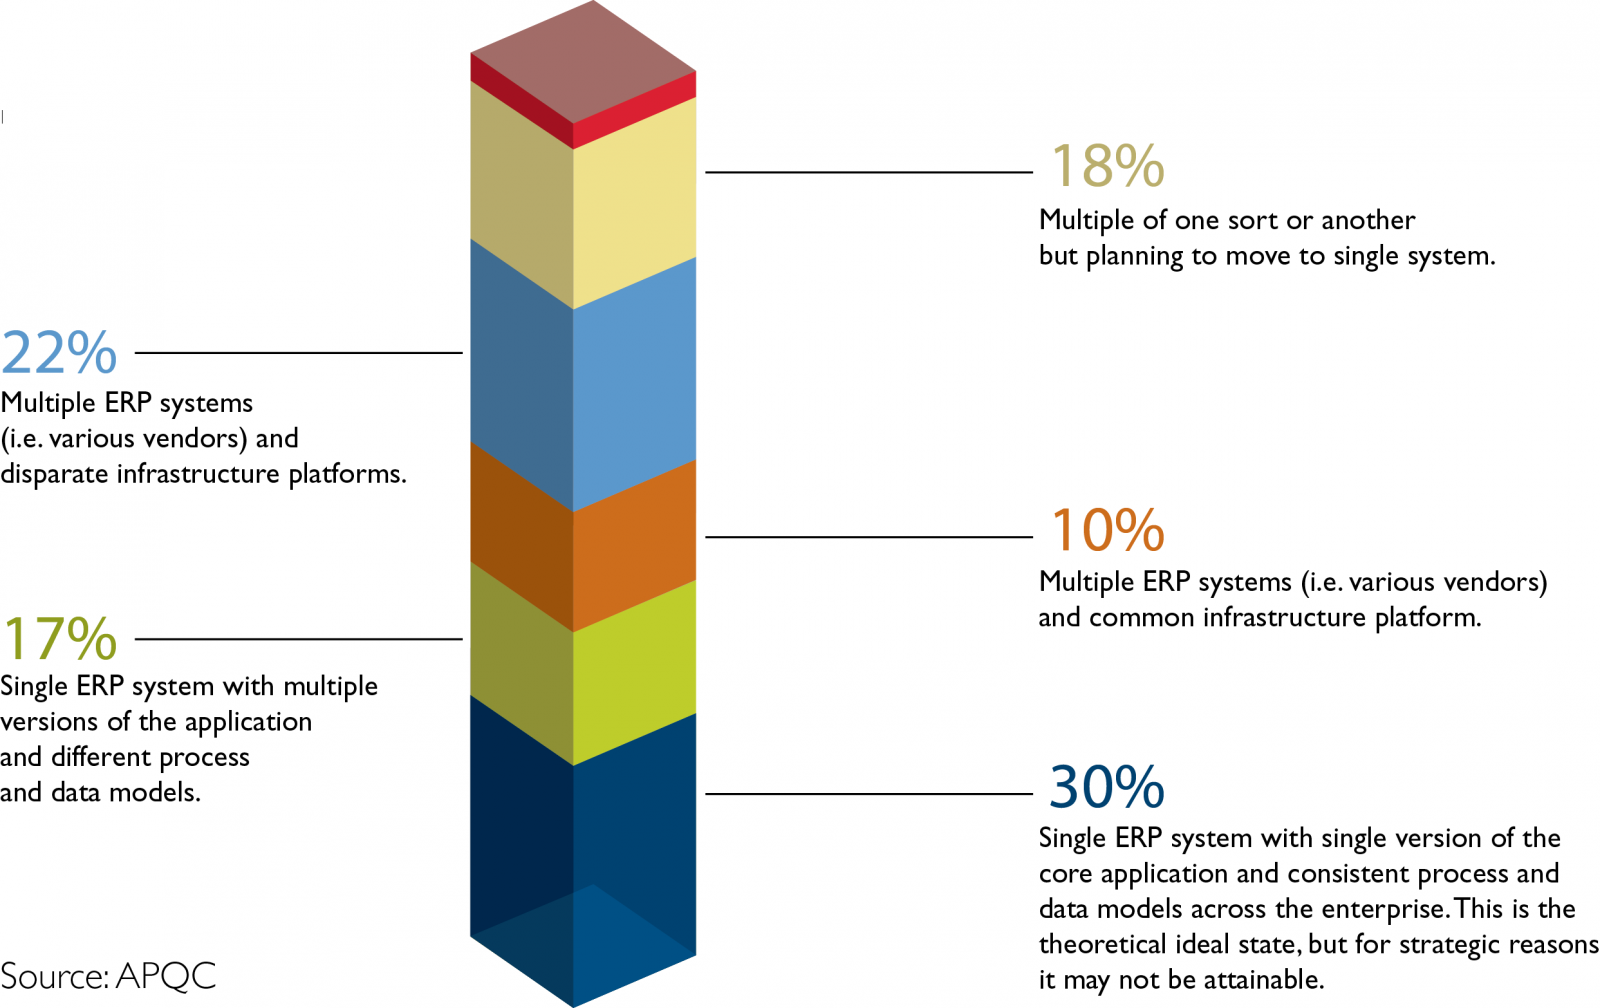 30 percent of organizations are in the theoretical ideal state of ERP systems, with one system and one platform, although this implementation may not be feasible for all companies.